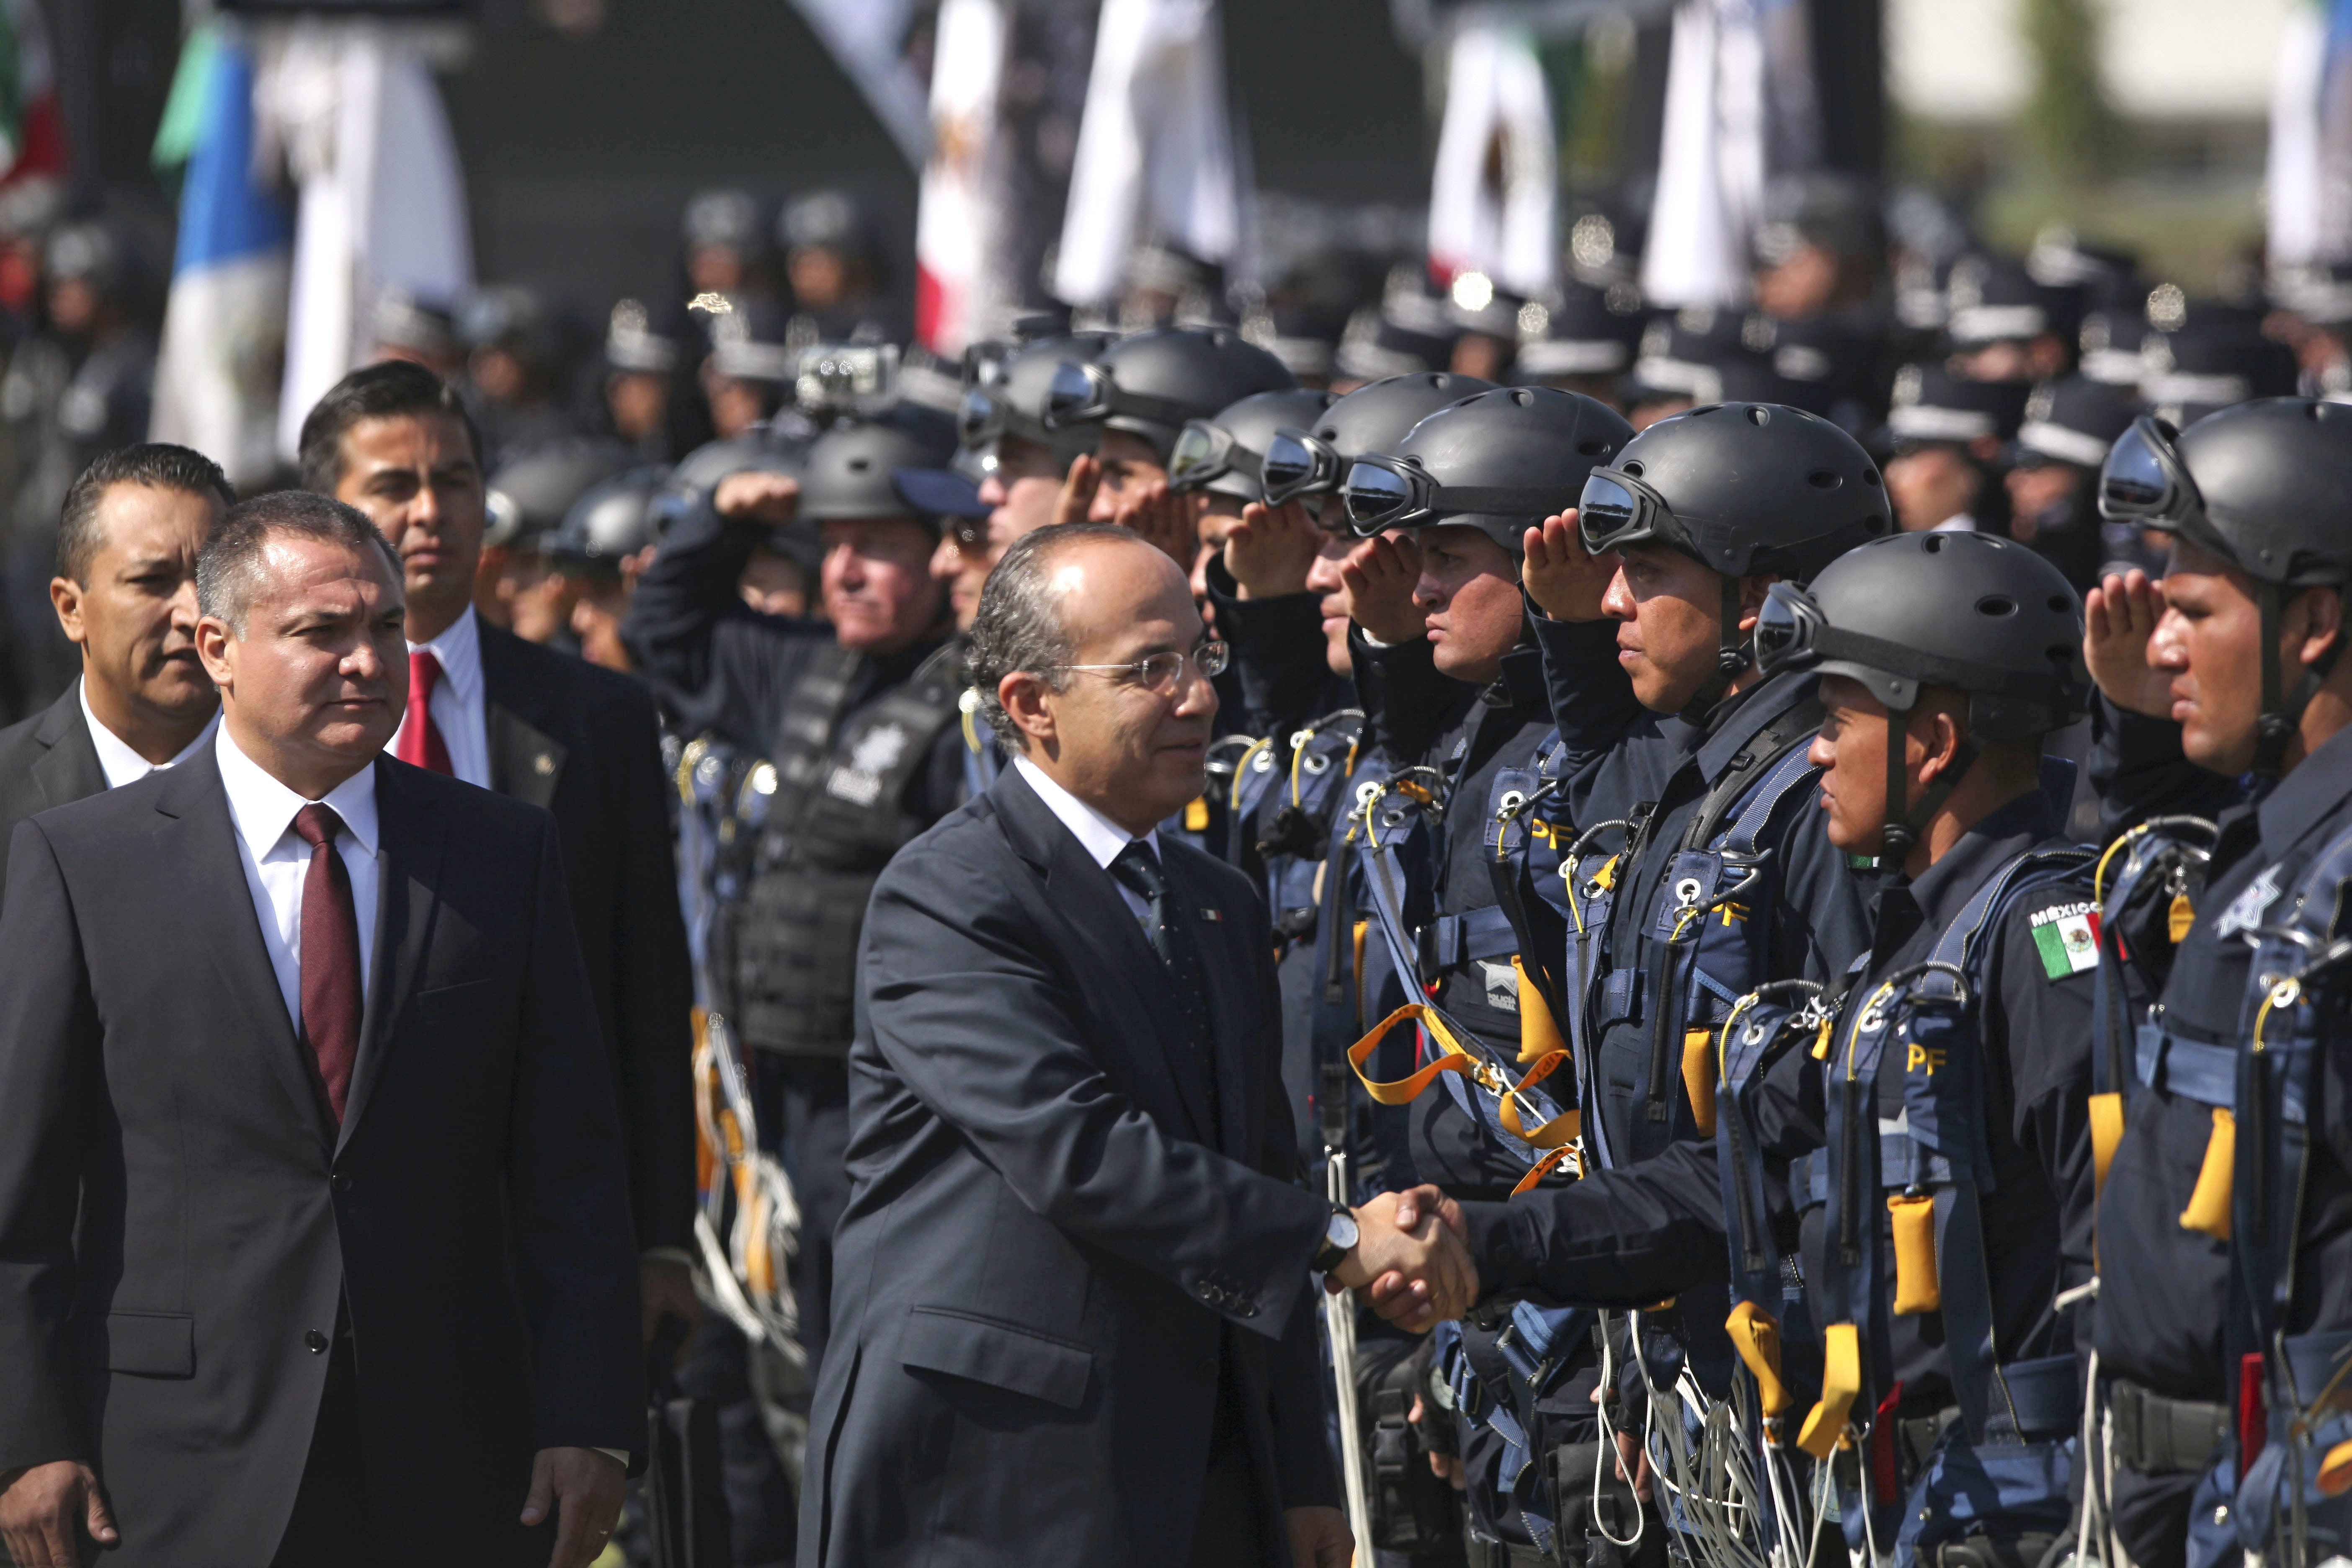 Mexico's President Felipe Calderon, center, followed by Mexico's Public Safety Secretary Genaro Garcia Luna, left, shakes hands with Federal Police officers during a ceremony to designate June 2 as the Federal Police Day in Mexico City, Thursday, June 2, 2011. (AP Photo/Alexandre Meneghini)